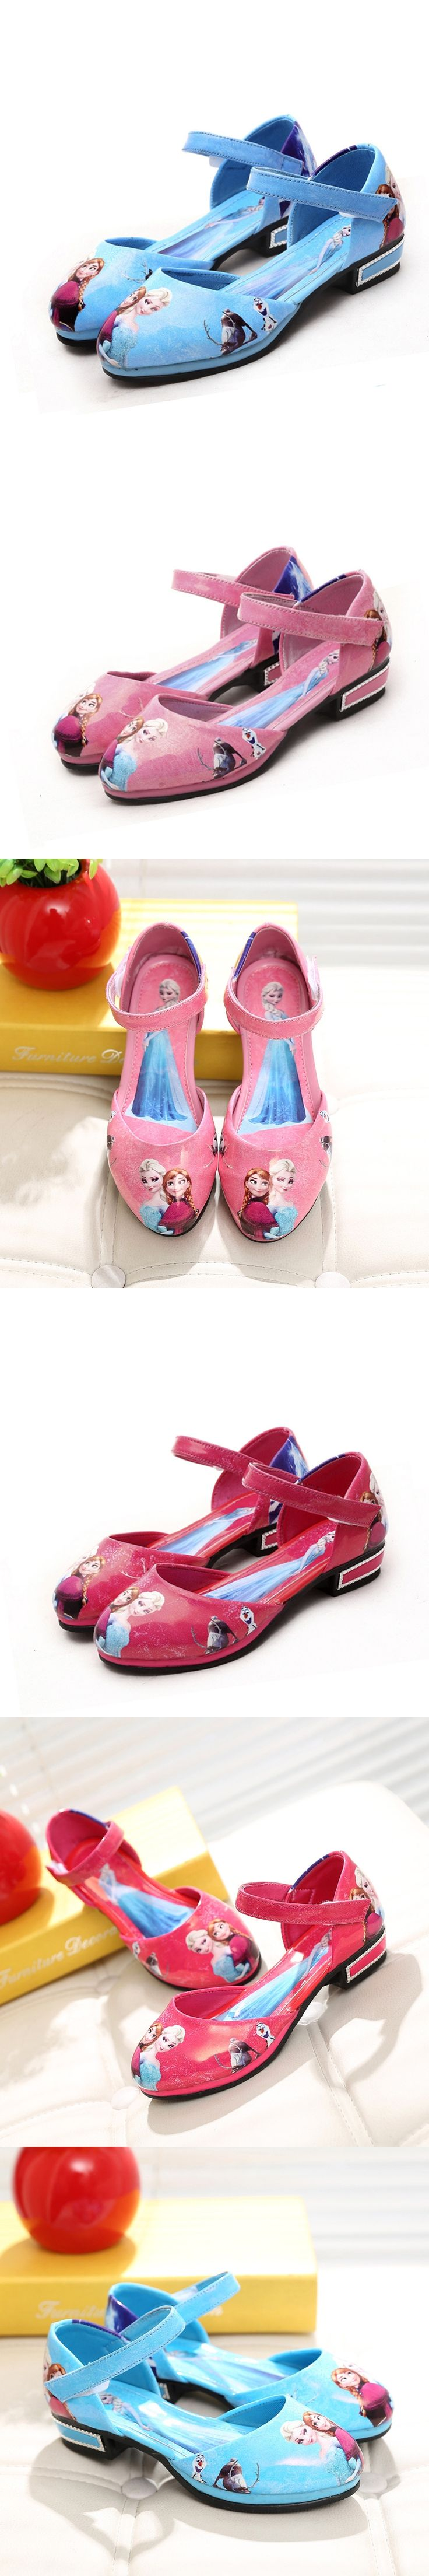 The 32 Best Childrens Shoes Images On Pinterest Baby Girl Shoes